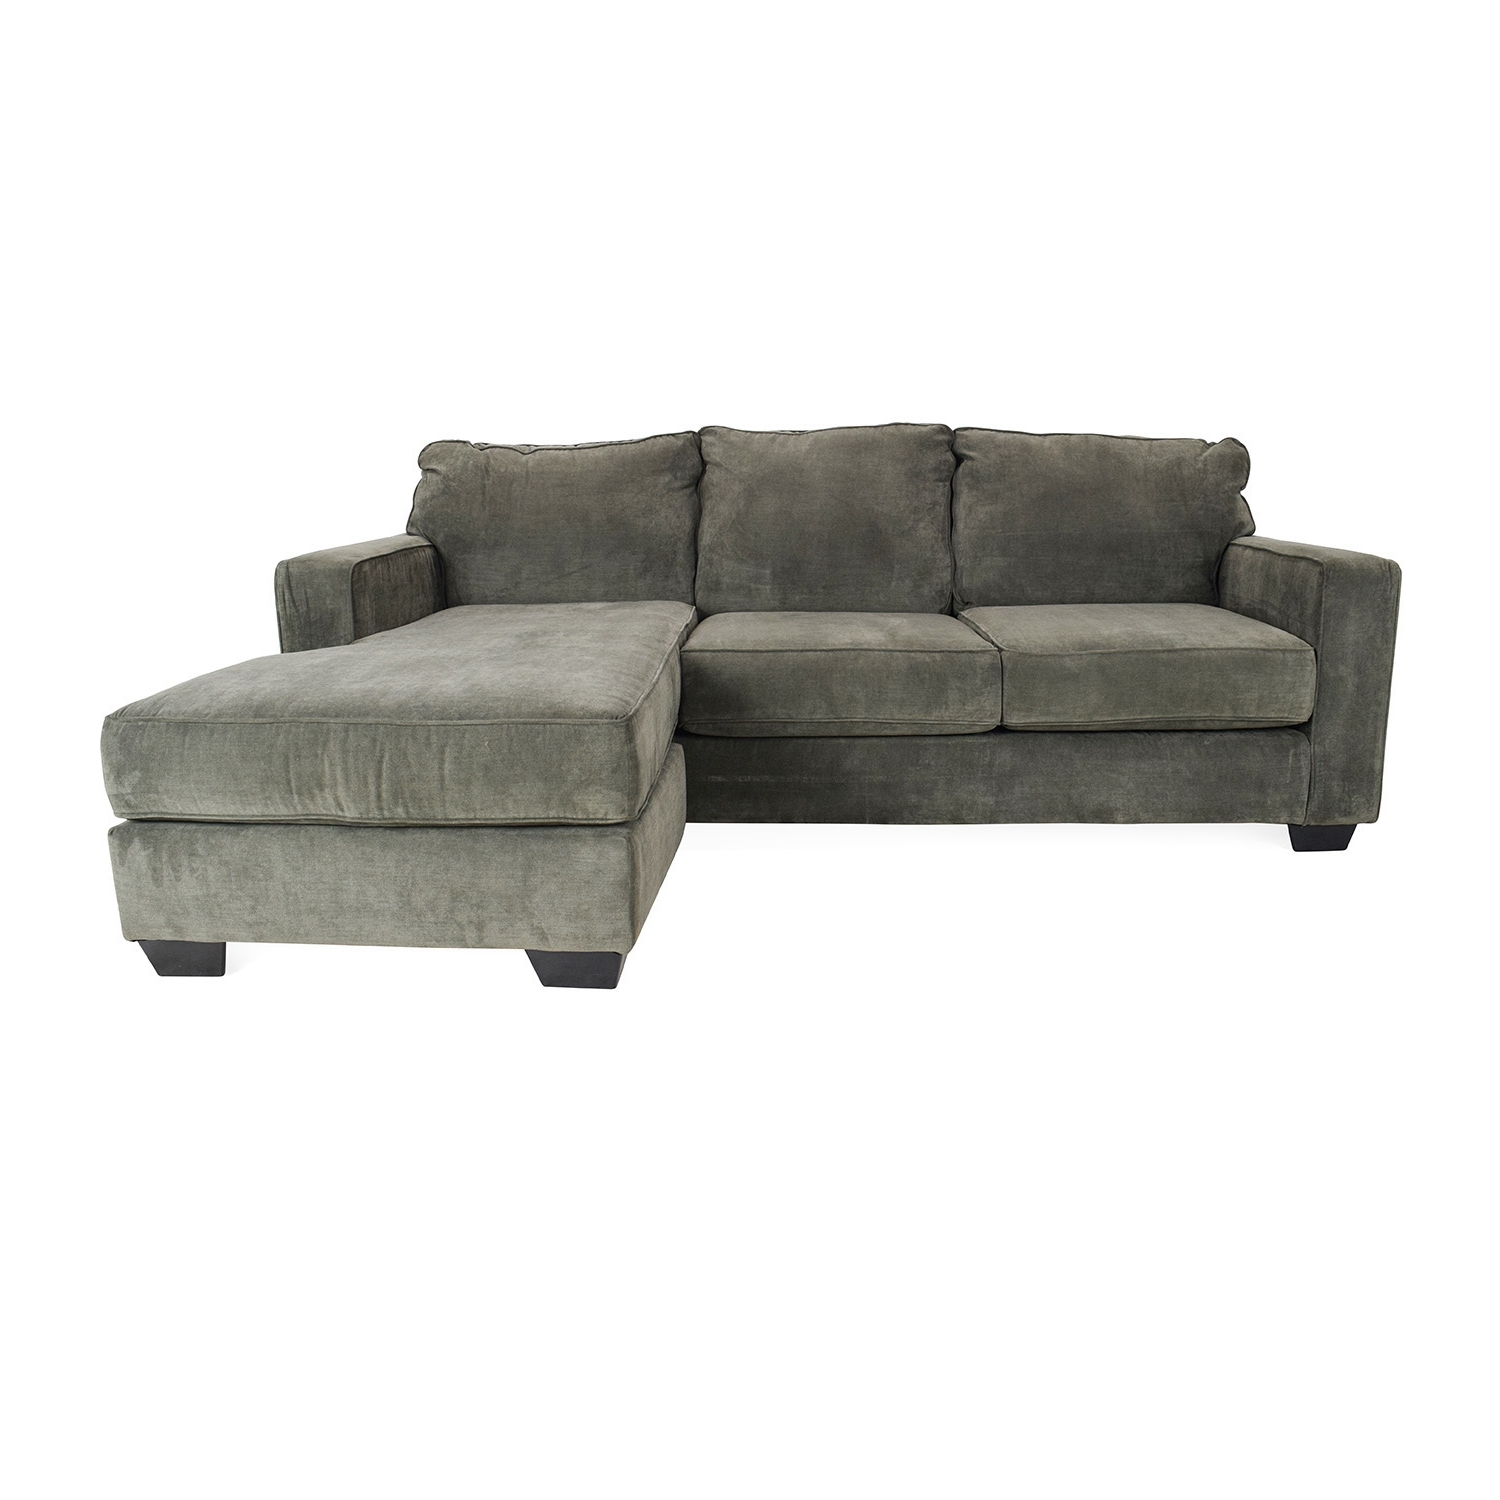 [%54% Off – Jennifer Convertibles Jennifer Convertibles Sectional With Regard To Preferred Jennifer Sofas|Jennifer Sofas Within 2019 54% Off – Jennifer Convertibles Jennifer Convertibles Sectional|Widely Used Jennifer Sofas Pertaining To 54% Off – Jennifer Convertibles Jennifer Convertibles Sectional|Trendy 54% Off – Jennifer Convertibles Jennifer Convertibles Sectional For Jennifer Sofas%] (View 5 of 20)